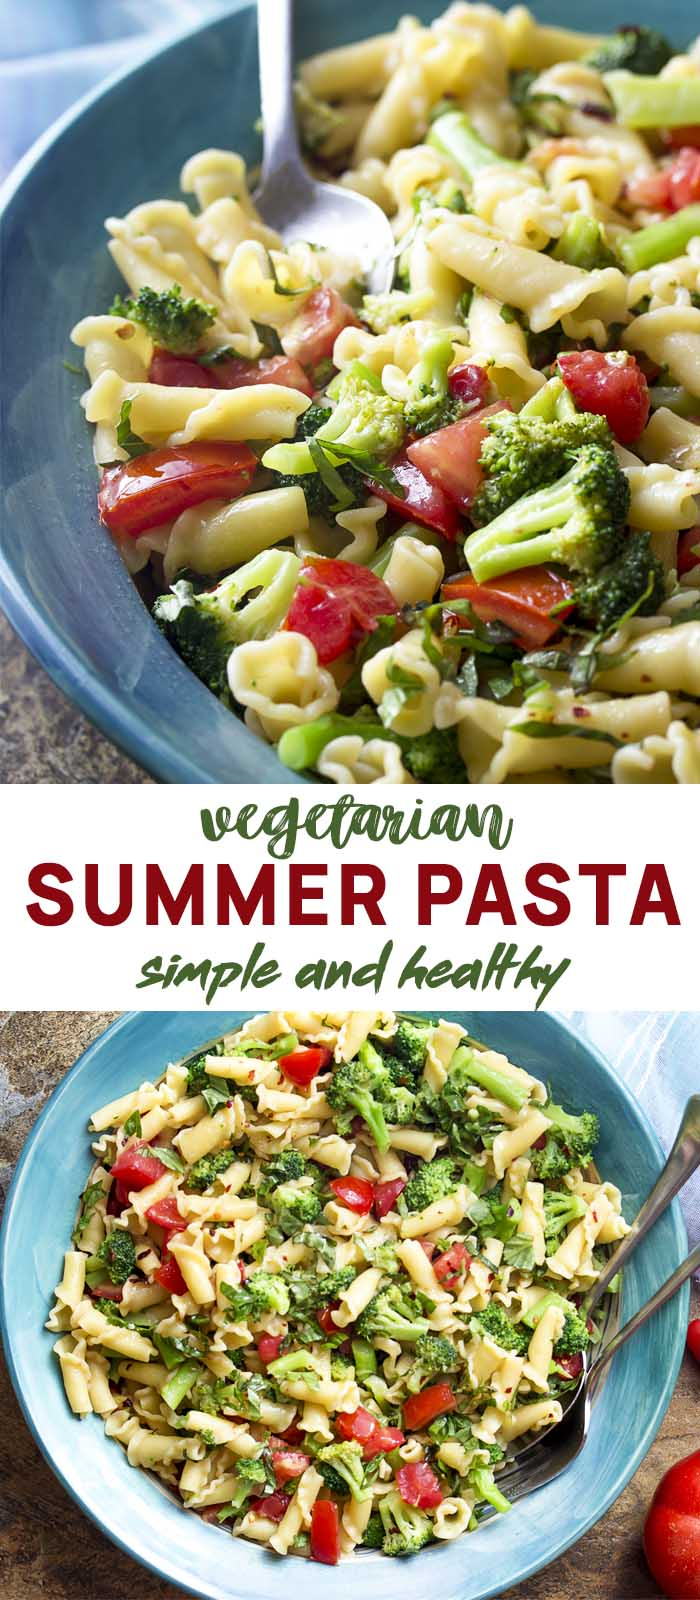 Pasta and vegetables in a blue serving bowl with text overlay - Vegetarian Summer Pasta.